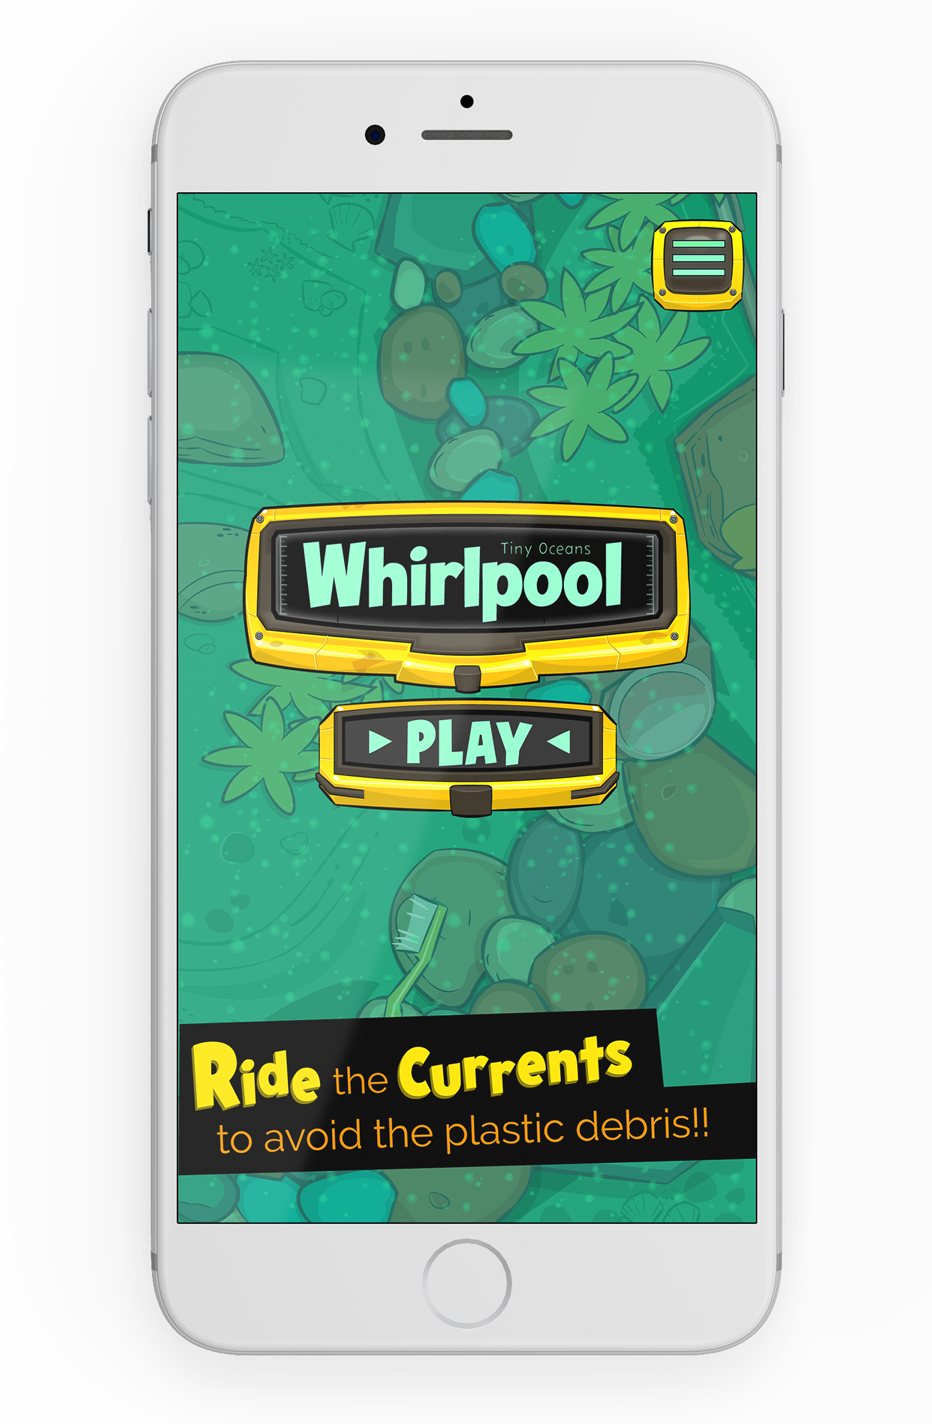 TINY OCEANS: WHIRLPOOL Mobile Device View